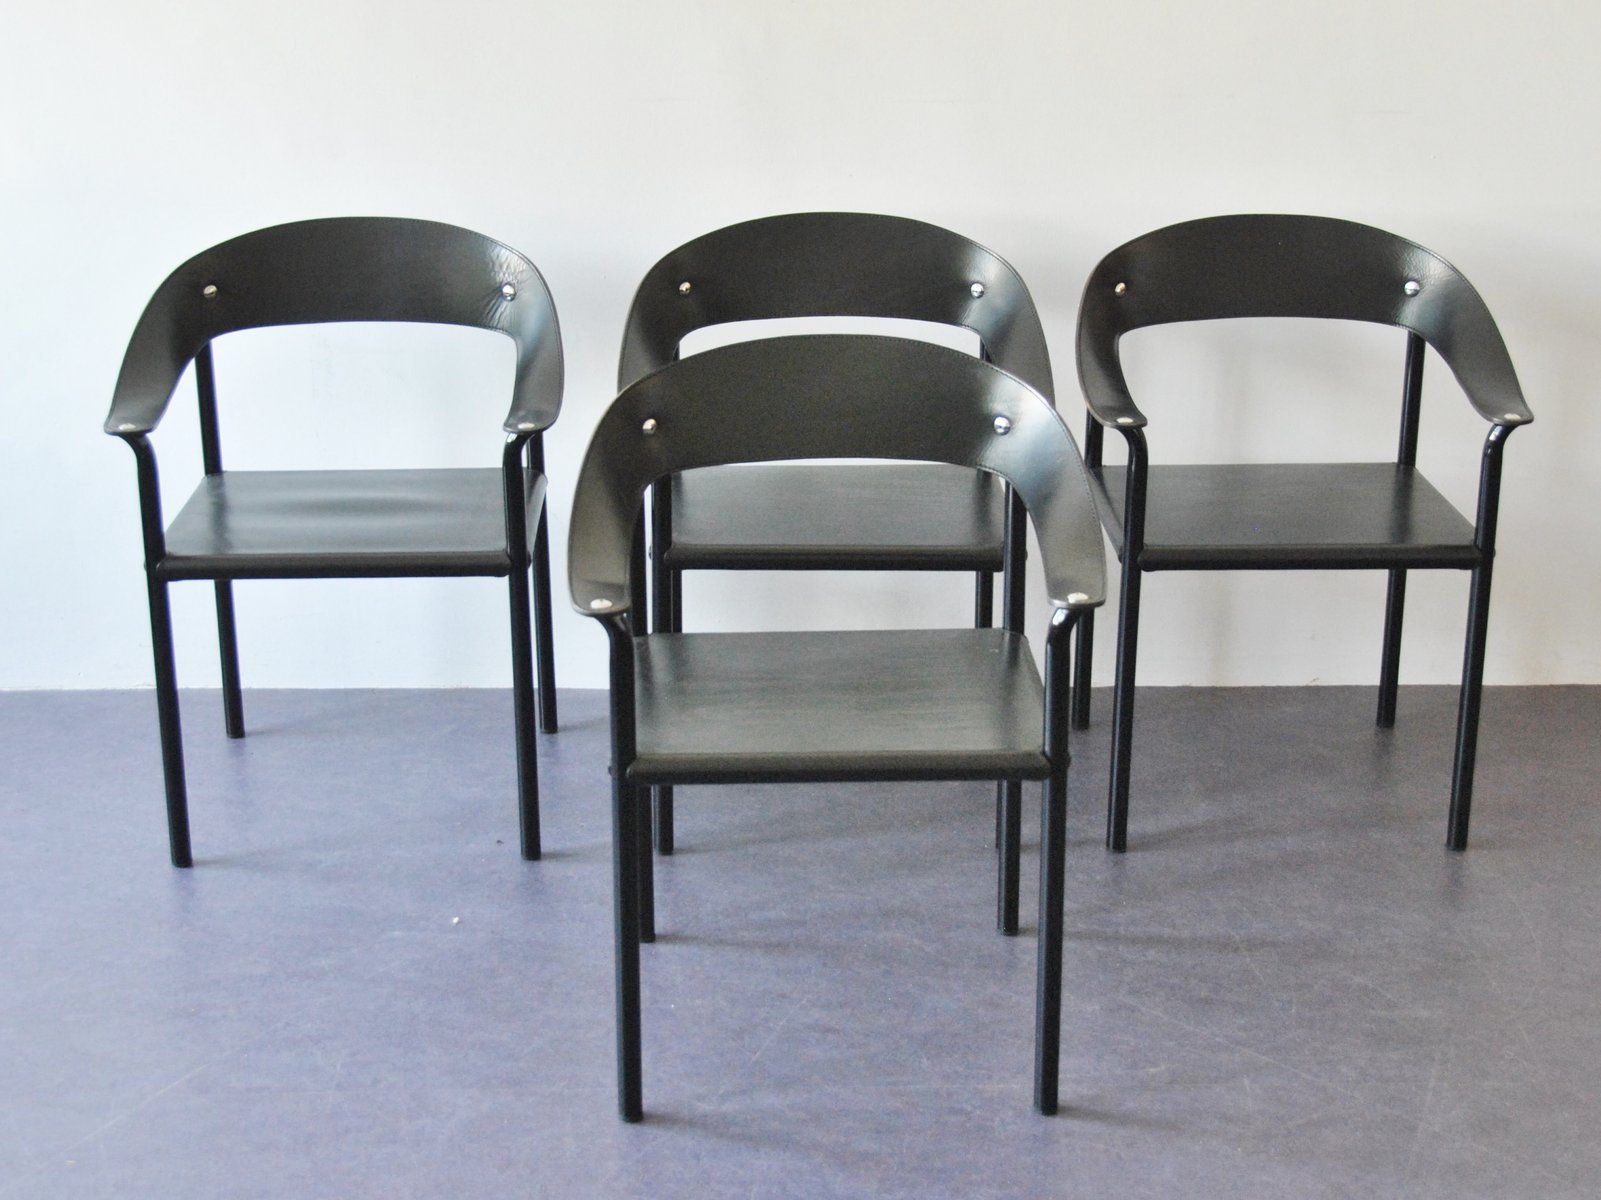 black metal dining chairs. Vintage Black Leather \u0026 Lacquered Metal Dining Chairs, Set Of 4 Chairs I